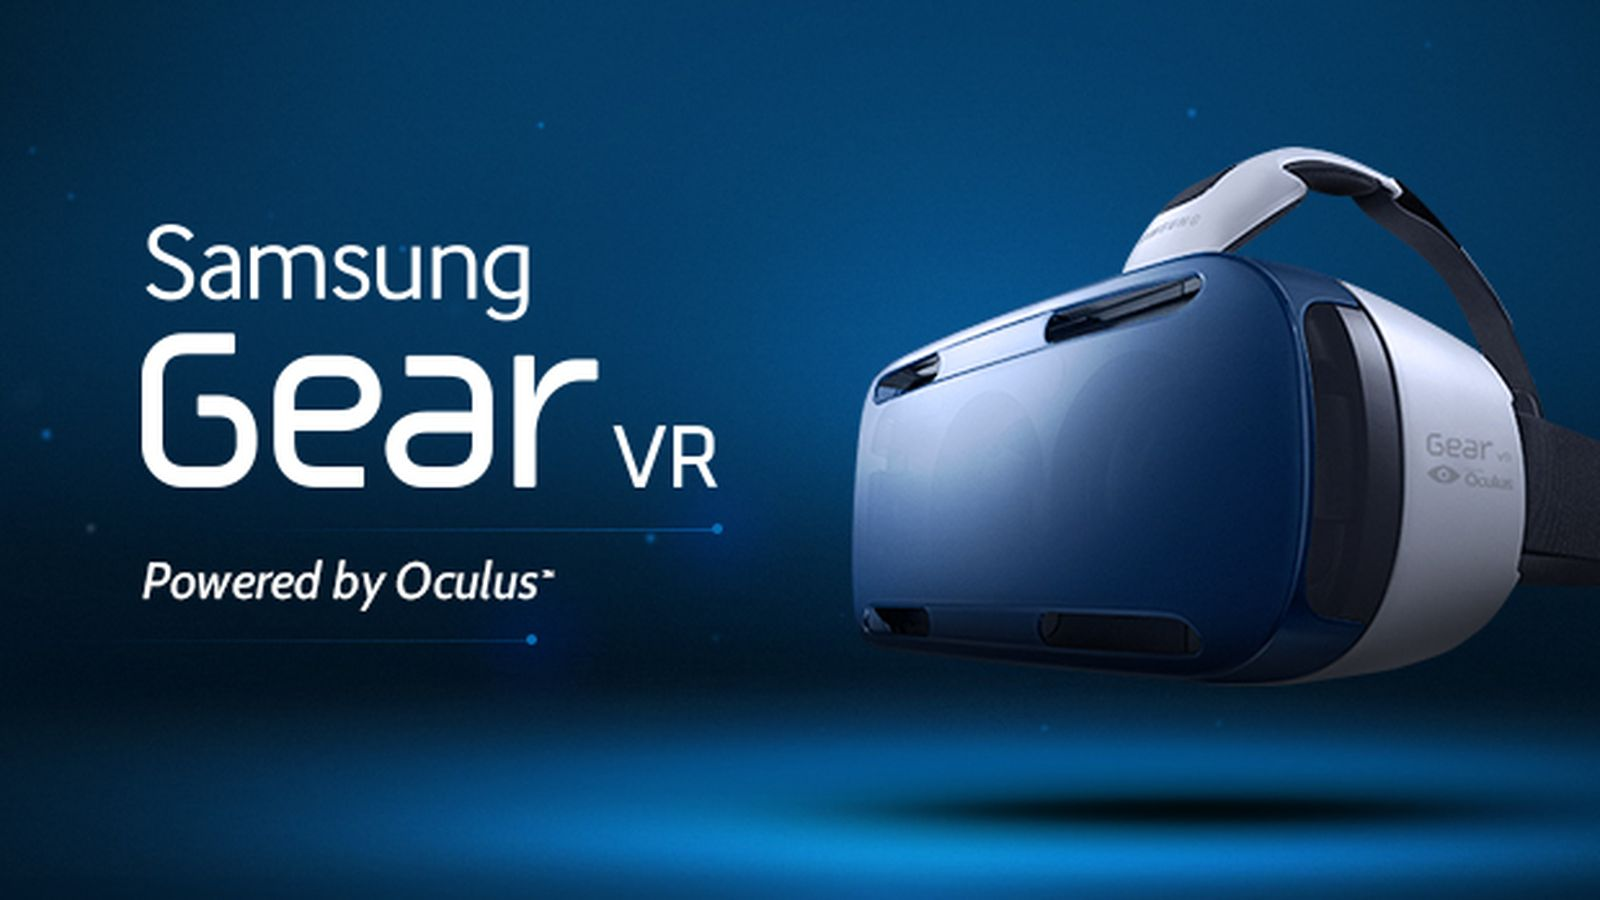 Samsung And Oculus Offer First Details On Cellphone